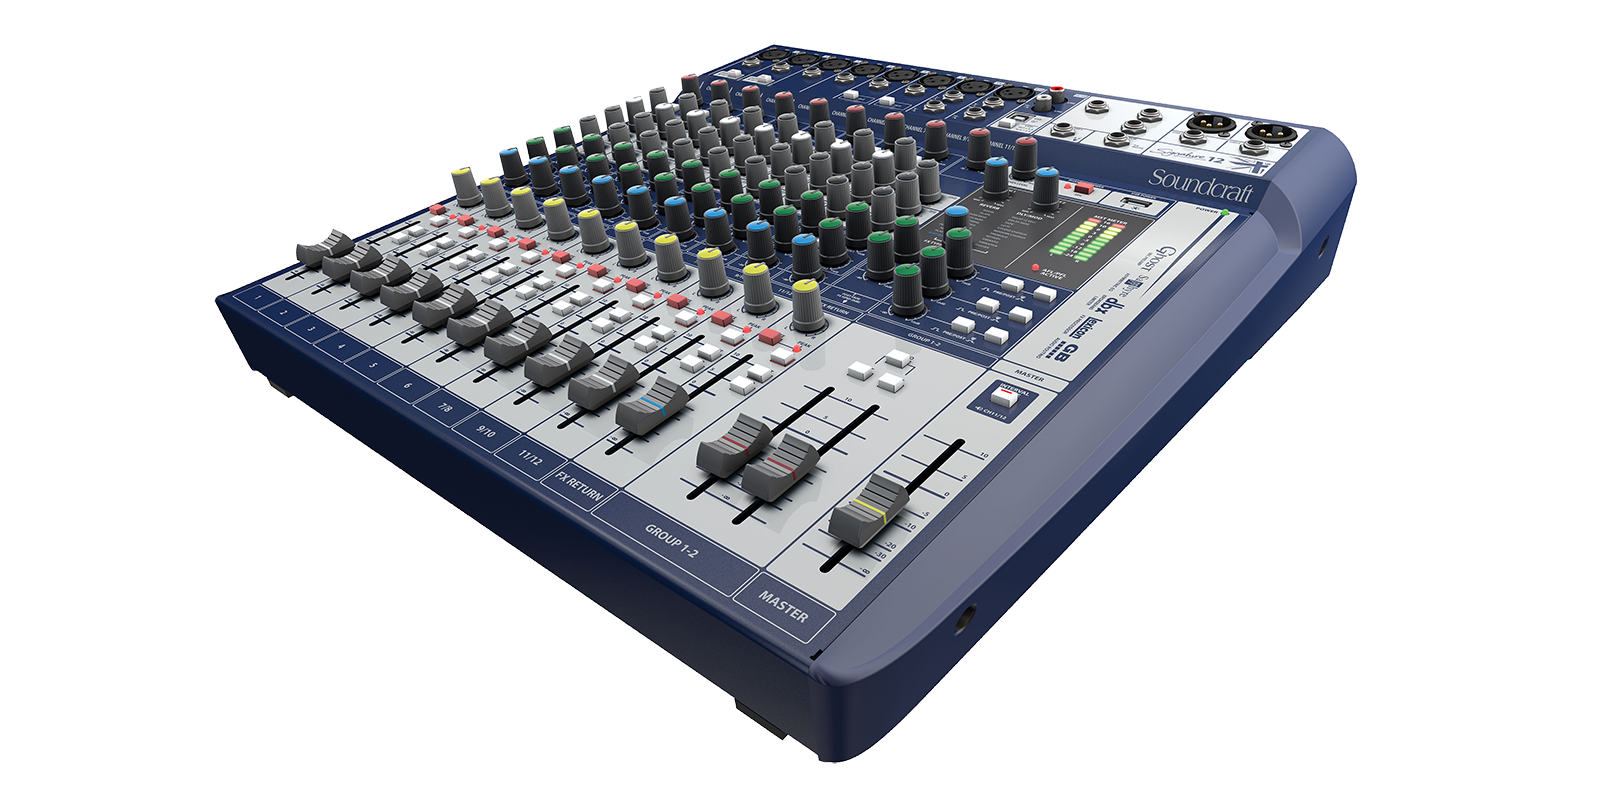 Signature 12 Soundcraft Professional Audio Mixers Simple Mixer Circuit Together With Compact Analogue Mixing Your Sound